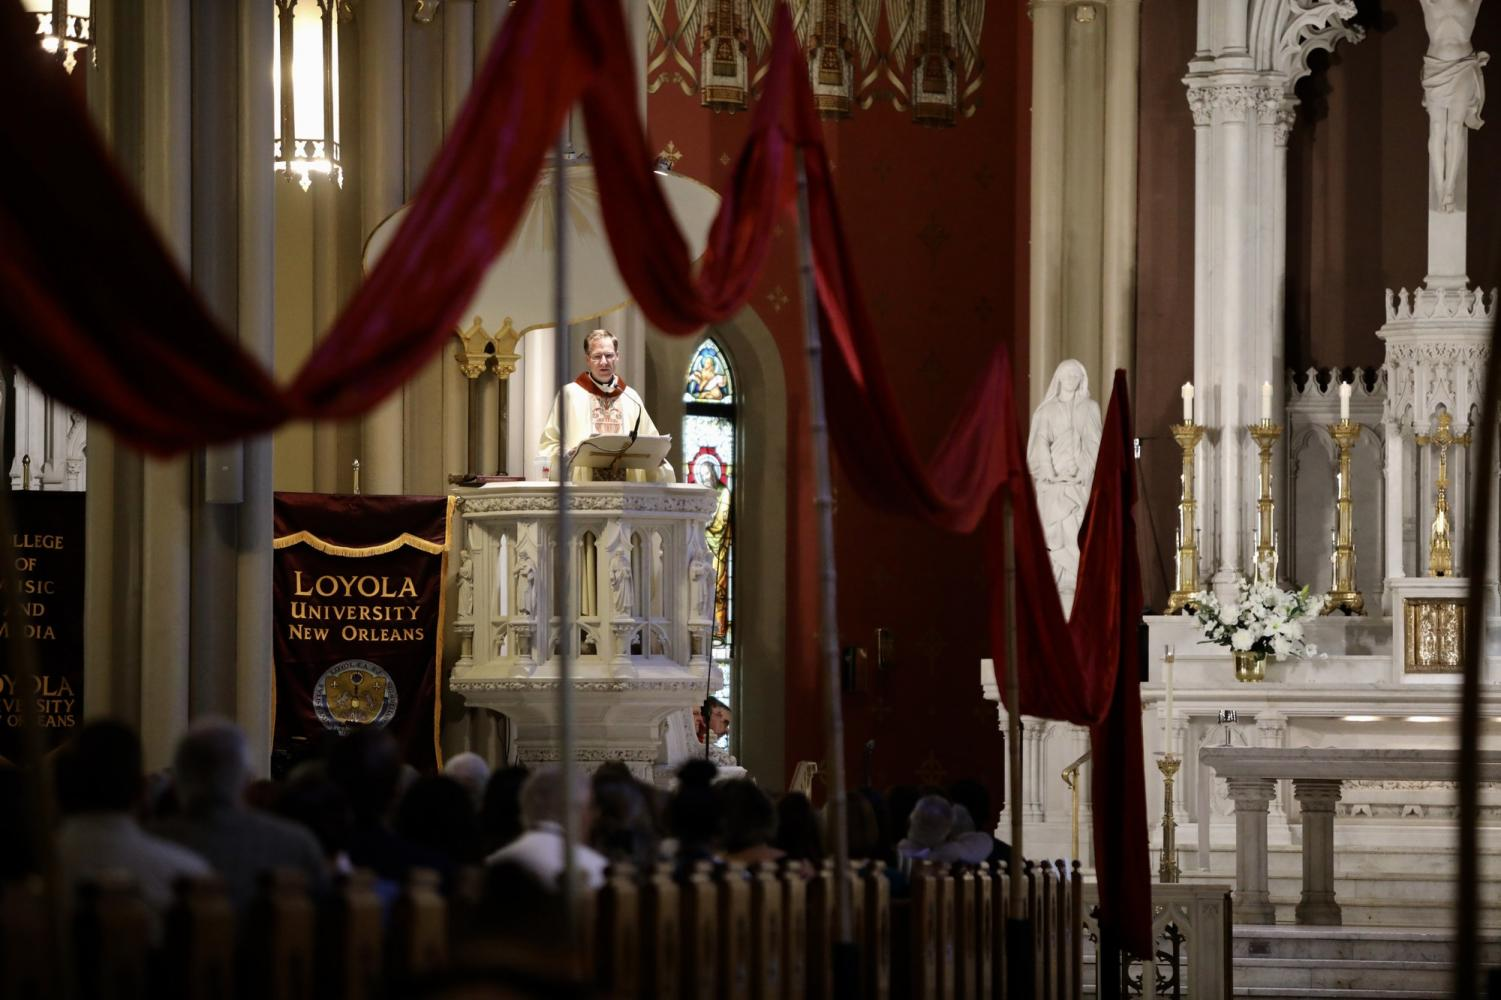 Red banners hang from poles all throughout the aisles of the Holy Name of Jesus church for the Mass of the Holy Spirit on September 5, 2019. The mass has an over 500 year old tie to Jesuit tradition. Photo credit: Andres Fuentes